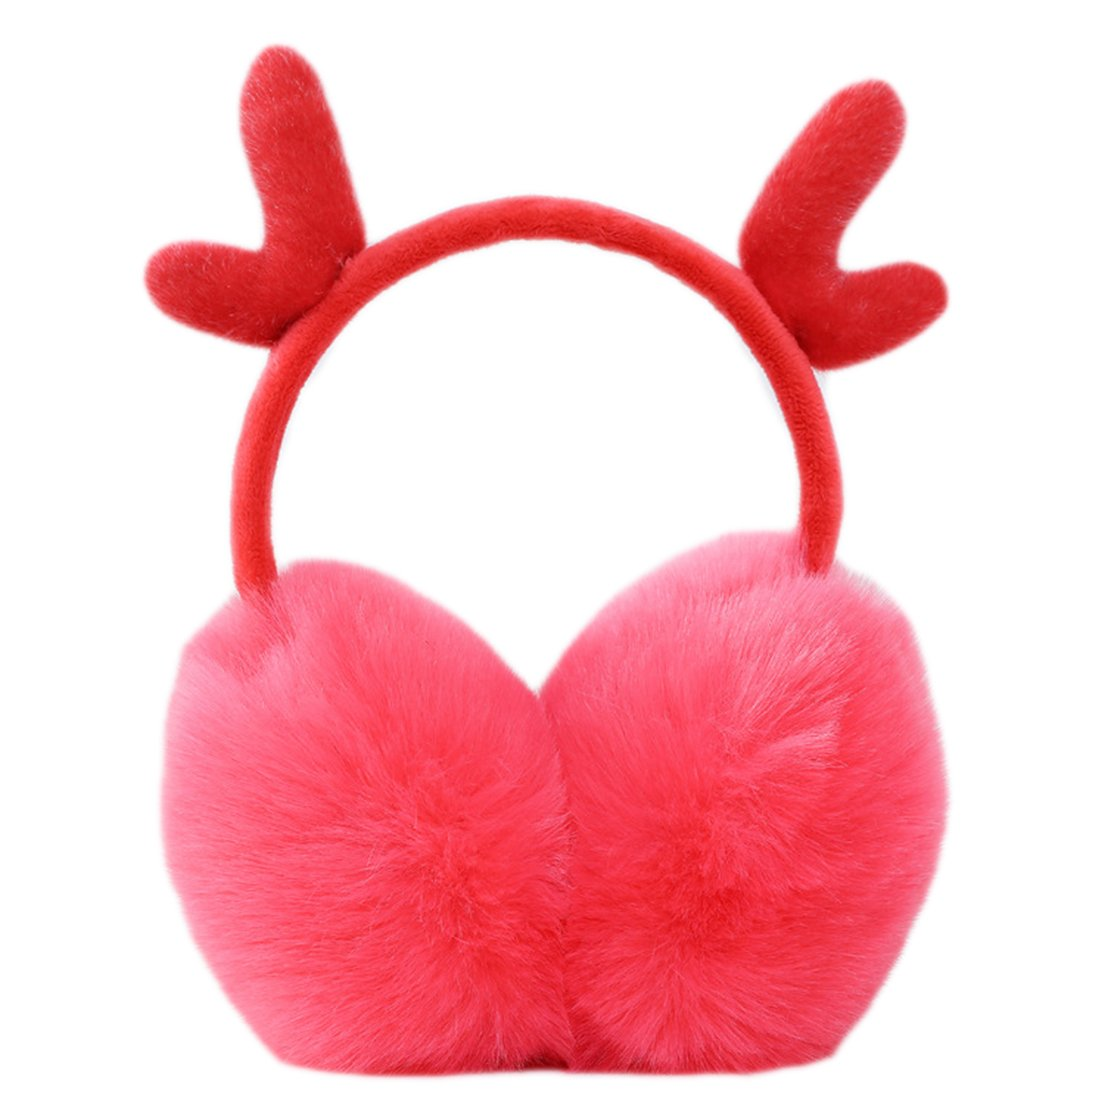 Freedi Women Earmuffs Faux Fur Reindeer Ear Warmers Winter Outdoor for Teens Girls Christmas Warm